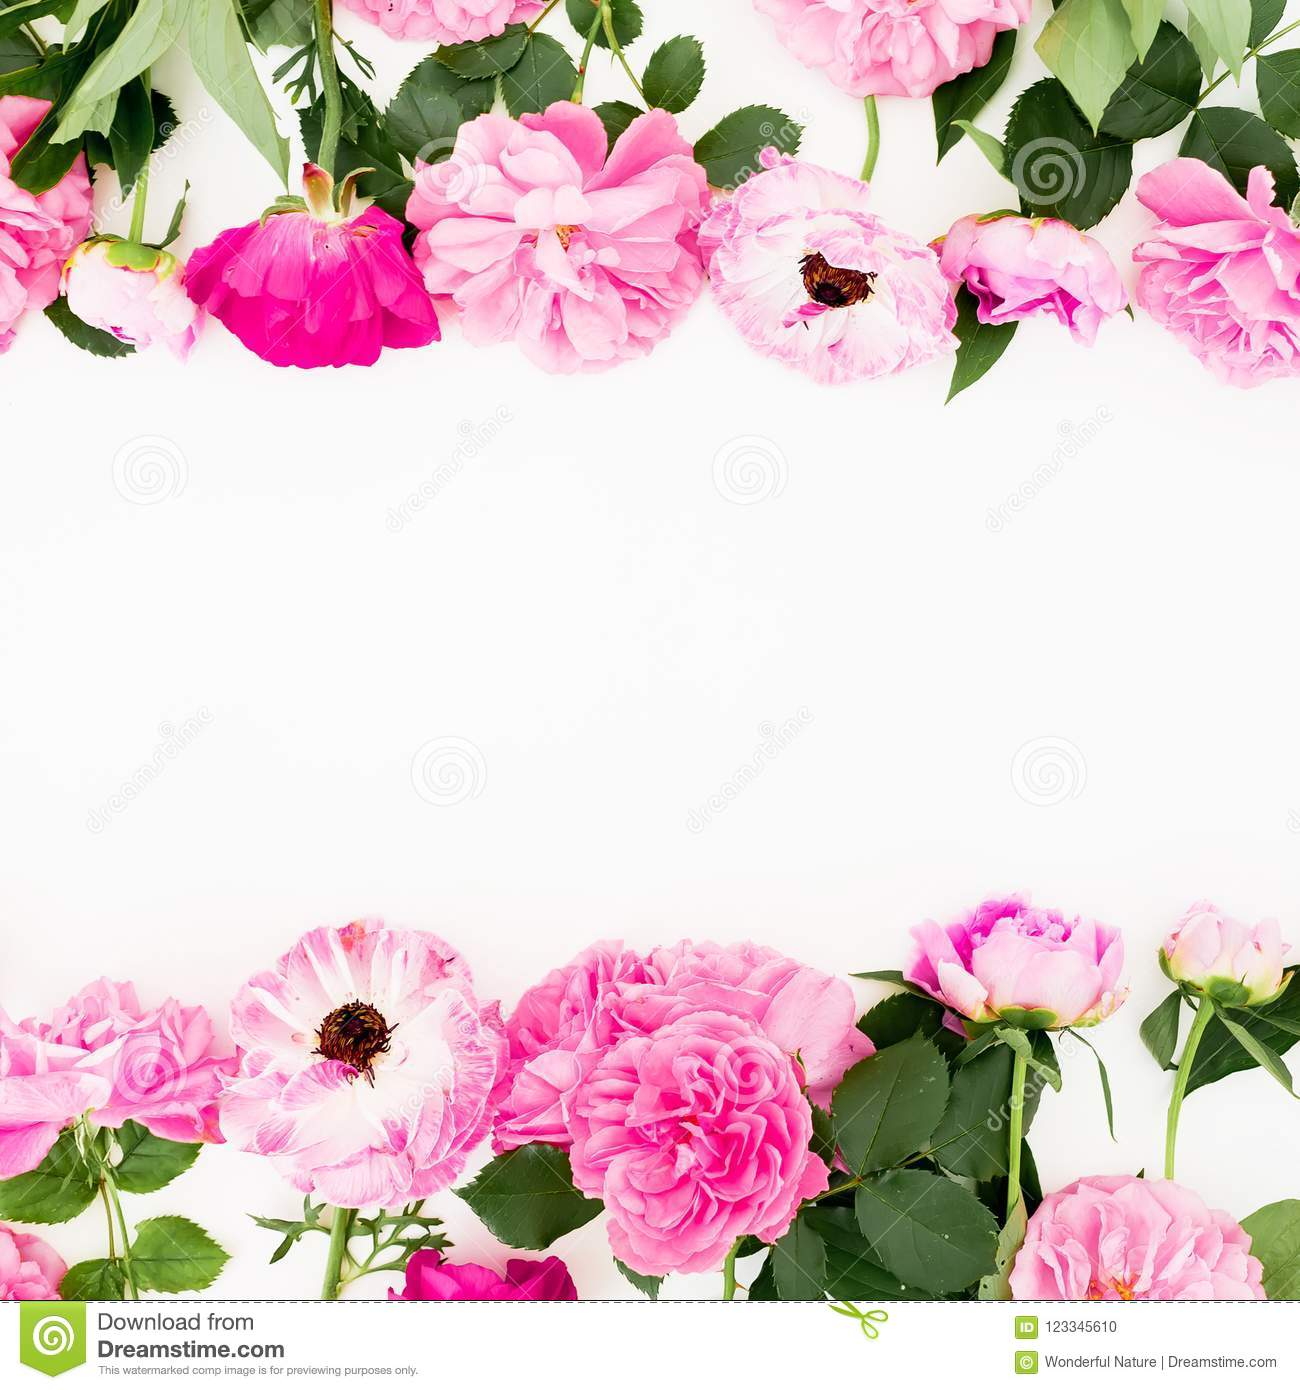 Frame with pink flowers on white background flat lay top view frame with pink flowers on white background flat lay top view pastel flowers mightylinksfo